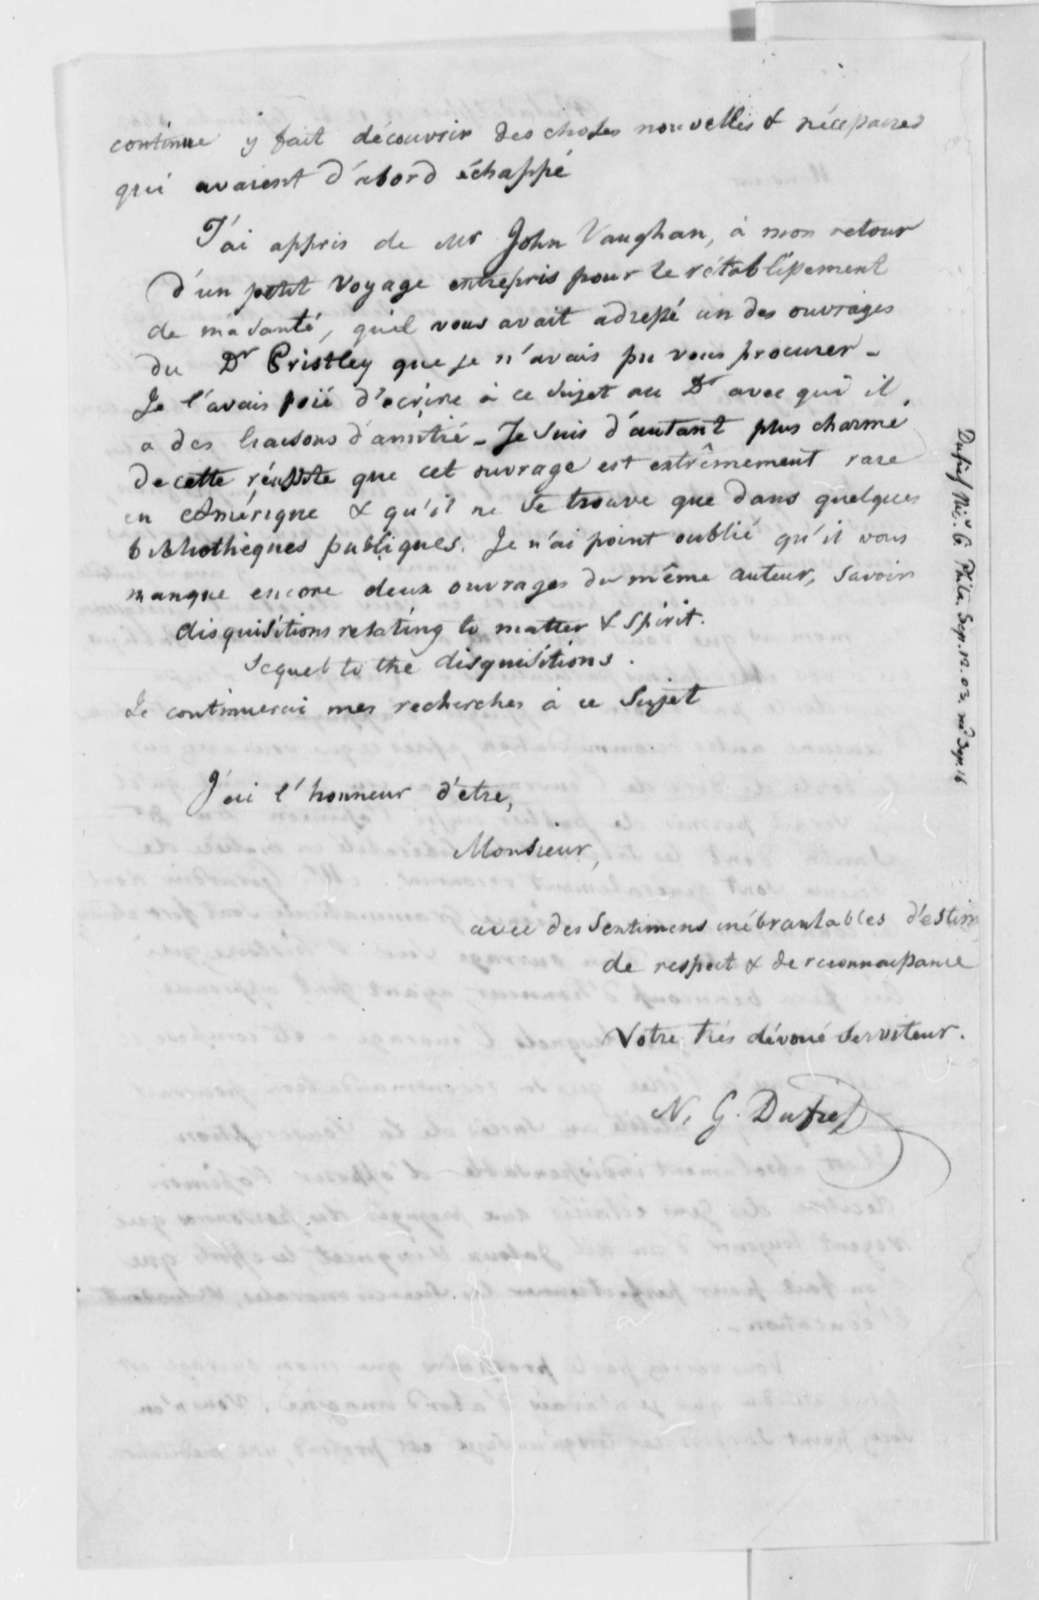 Nicholas Gouin Dufief to Thomas Jefferson, September 12, 1803, in French